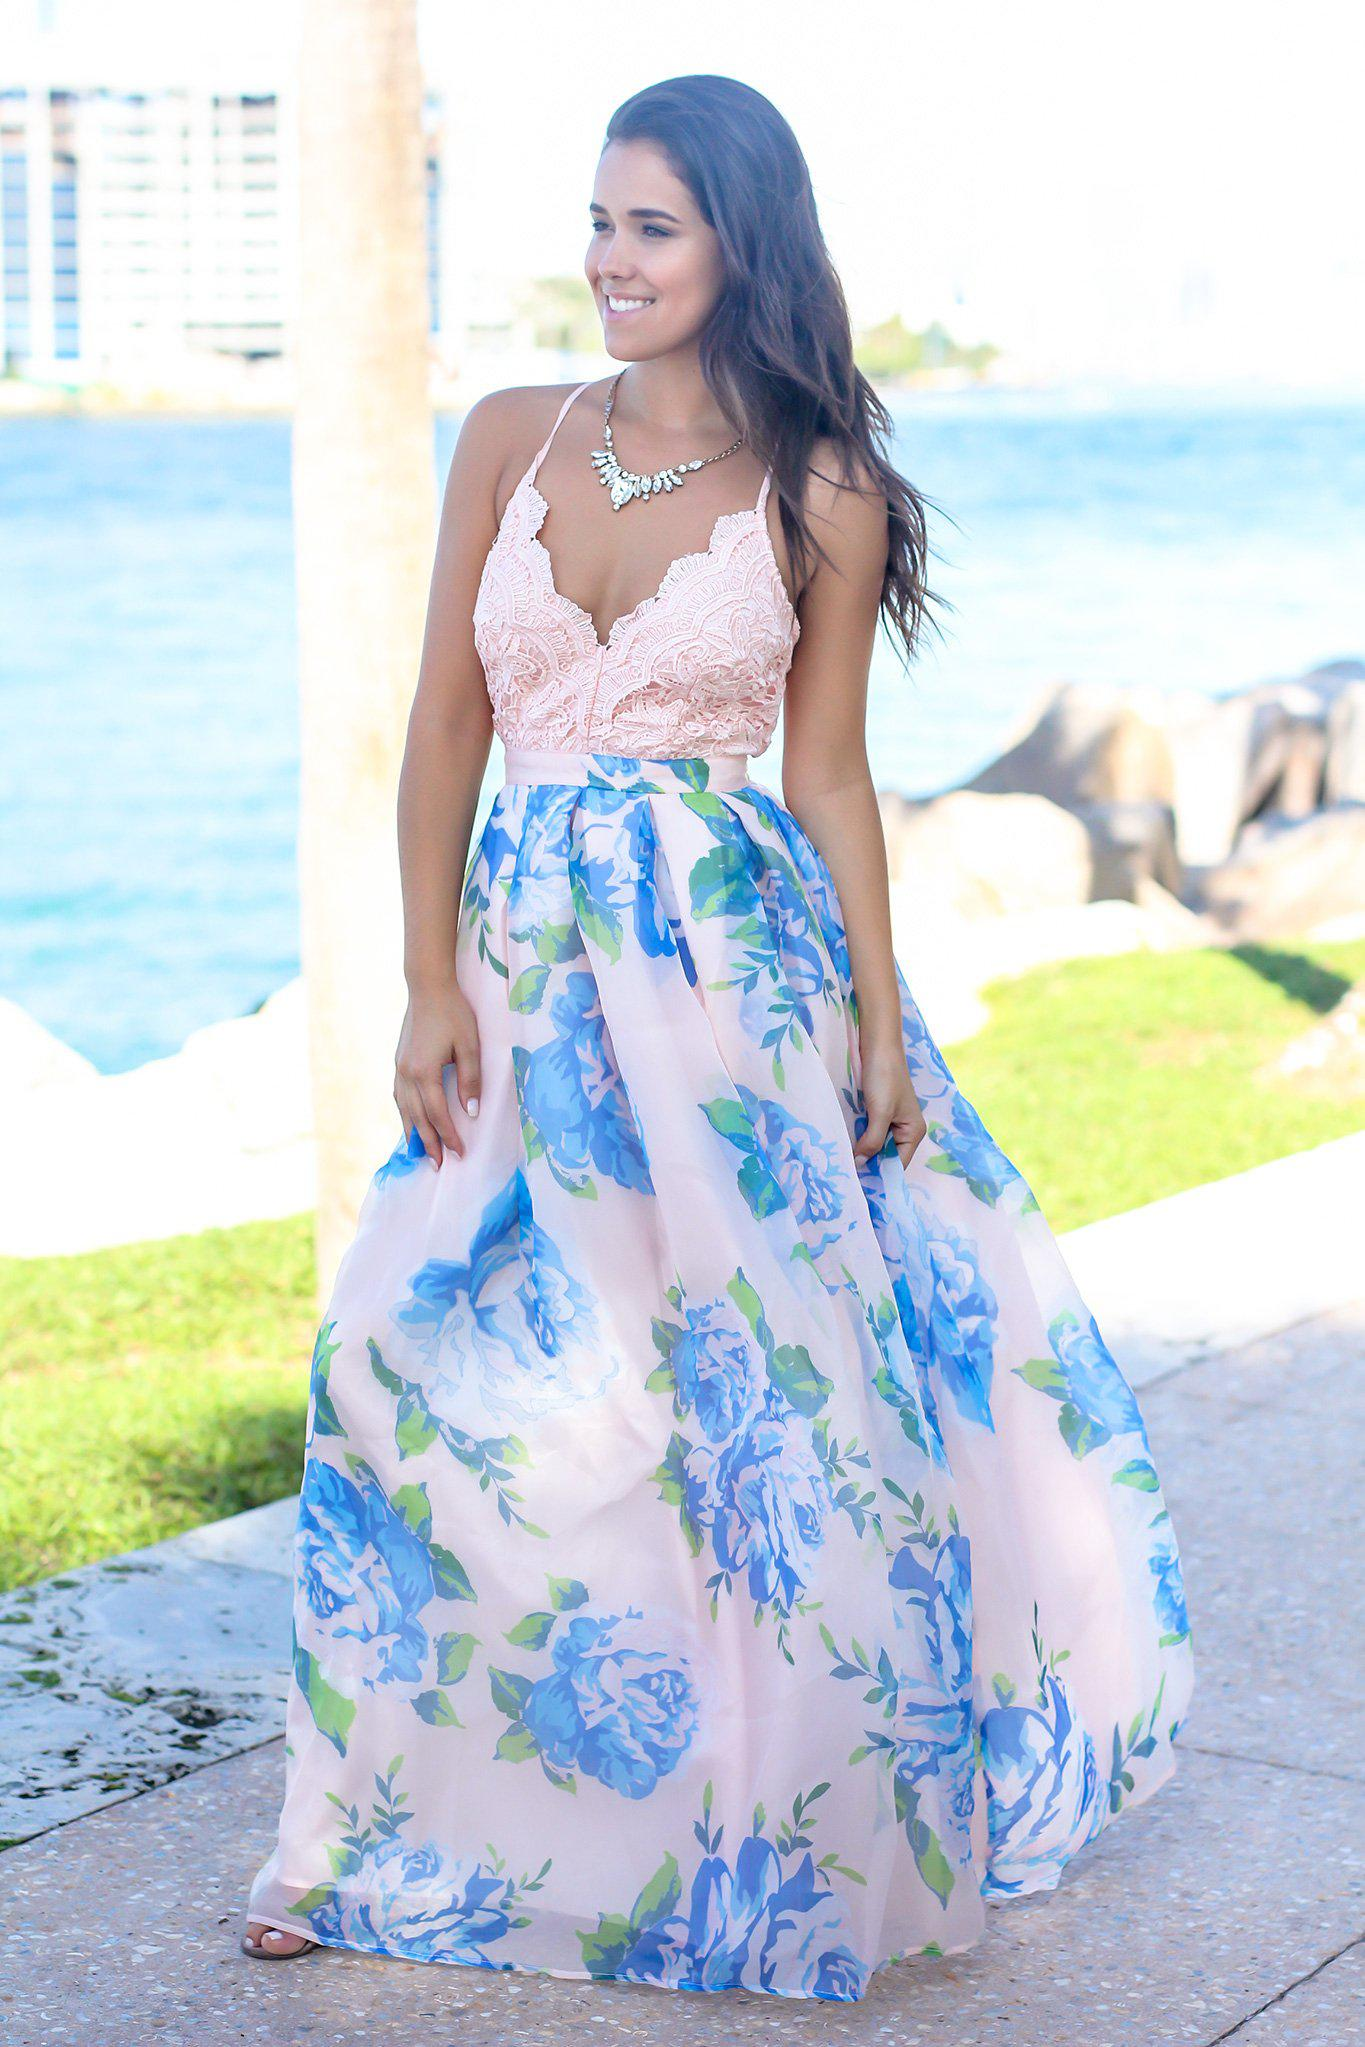 dbba7674cabd0 Pink and Blue Floral Maxi Dress with Crochet Top